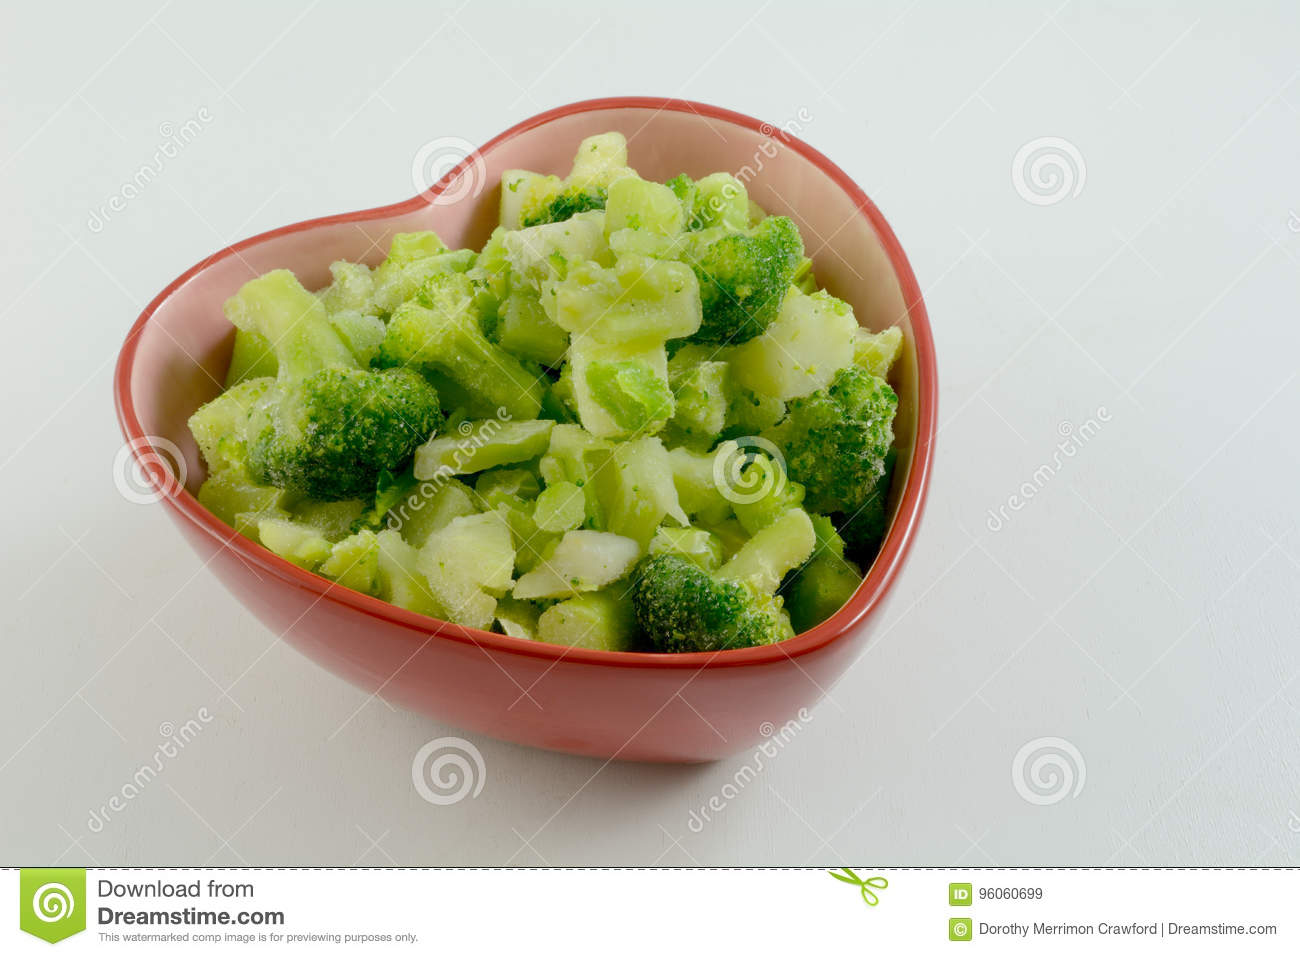 Broccoli surgelé